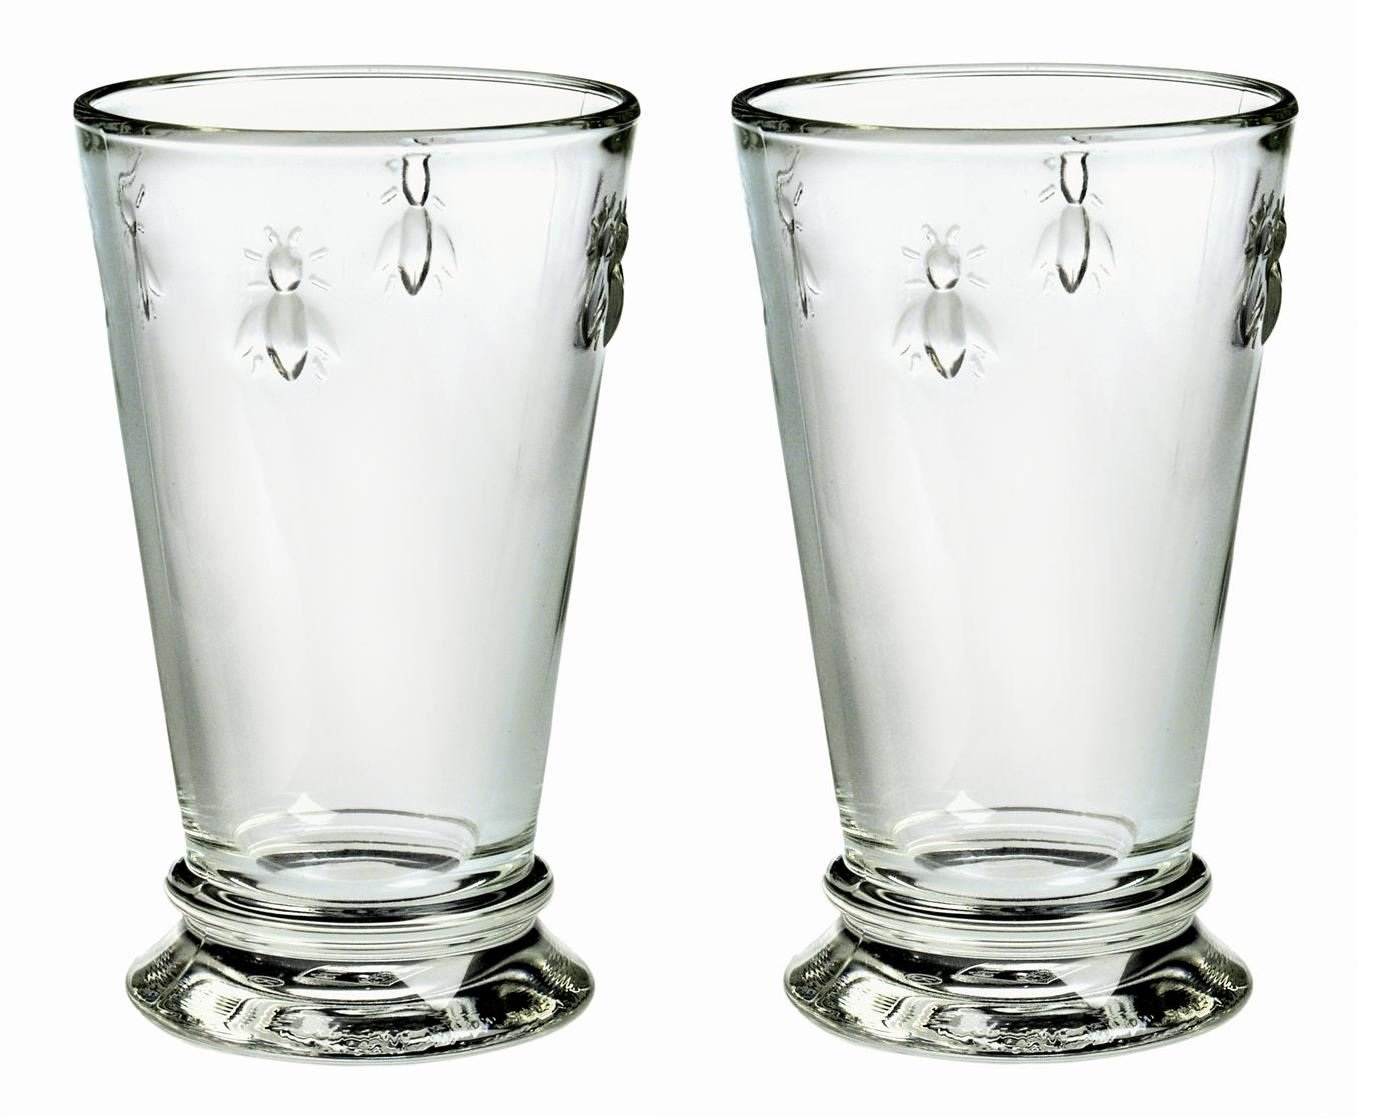 La Rochere Bee Glass HighBall Tumbler Set of 2, 12 floz